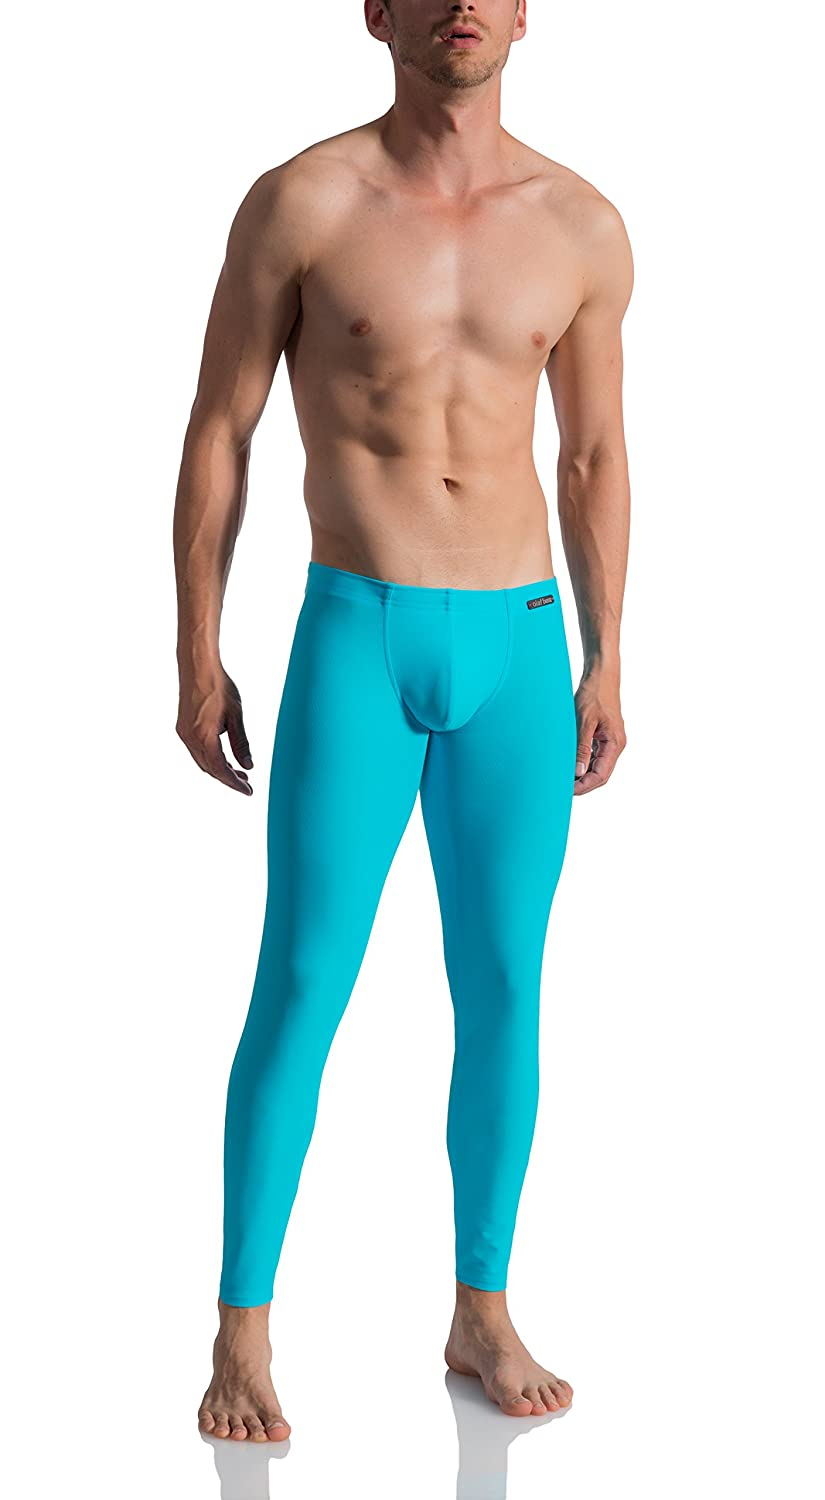 Olaf Benz - Beachwear BLU1753 - Innovation  Wechseloptik - Freestylepants - limitiert